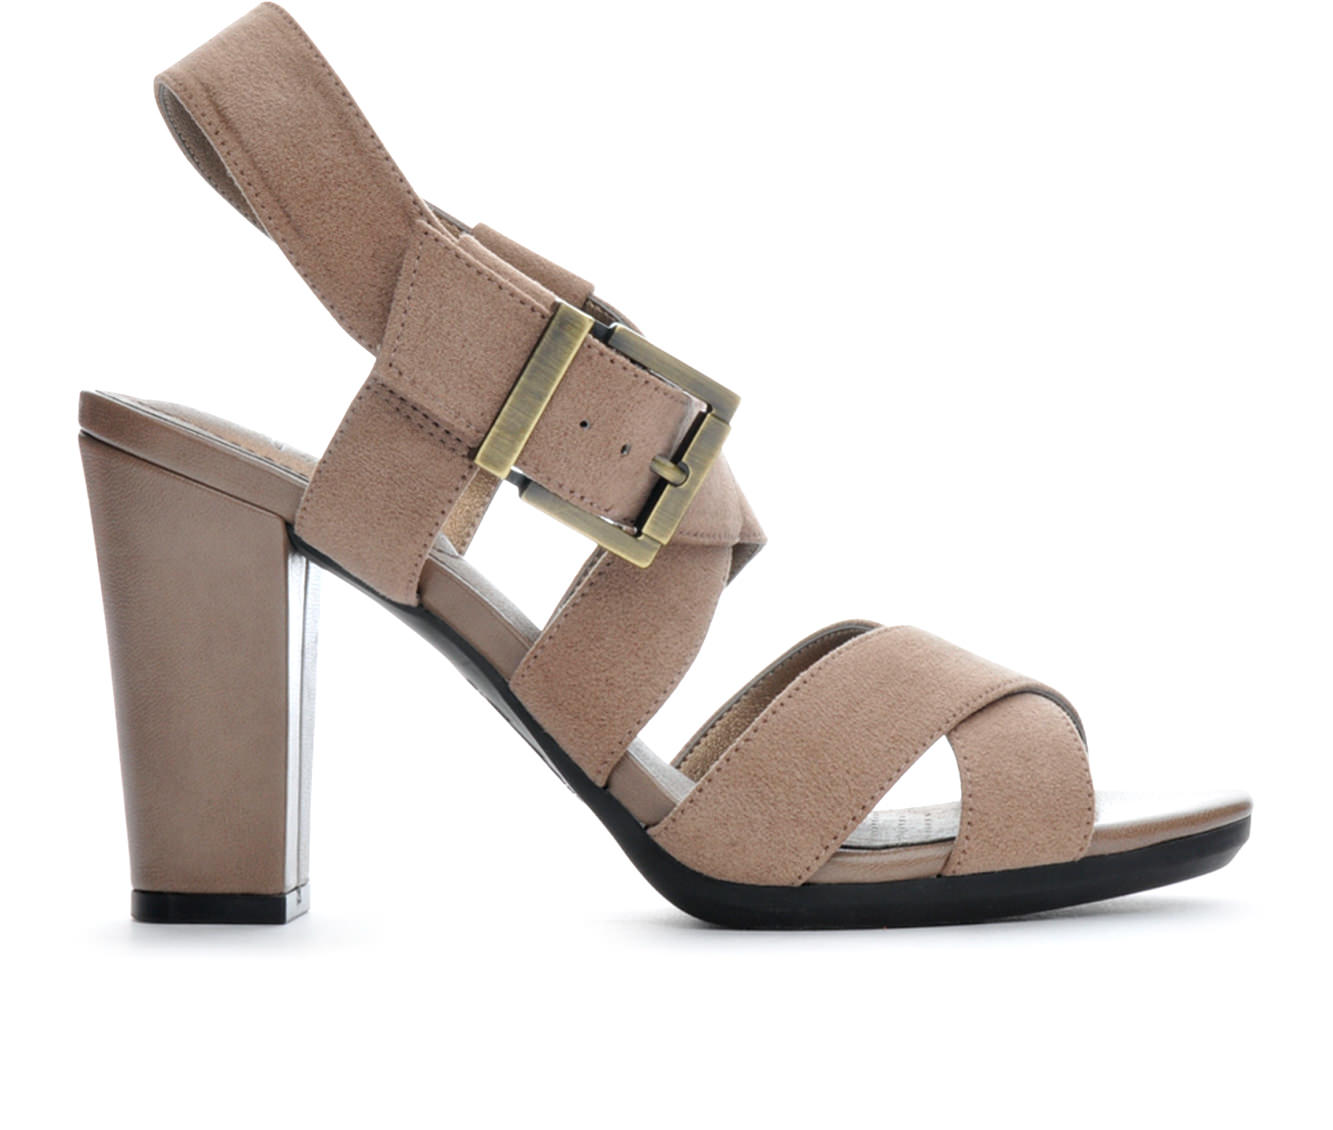 Women's LifeStride Nicely Block Heels (Beige)